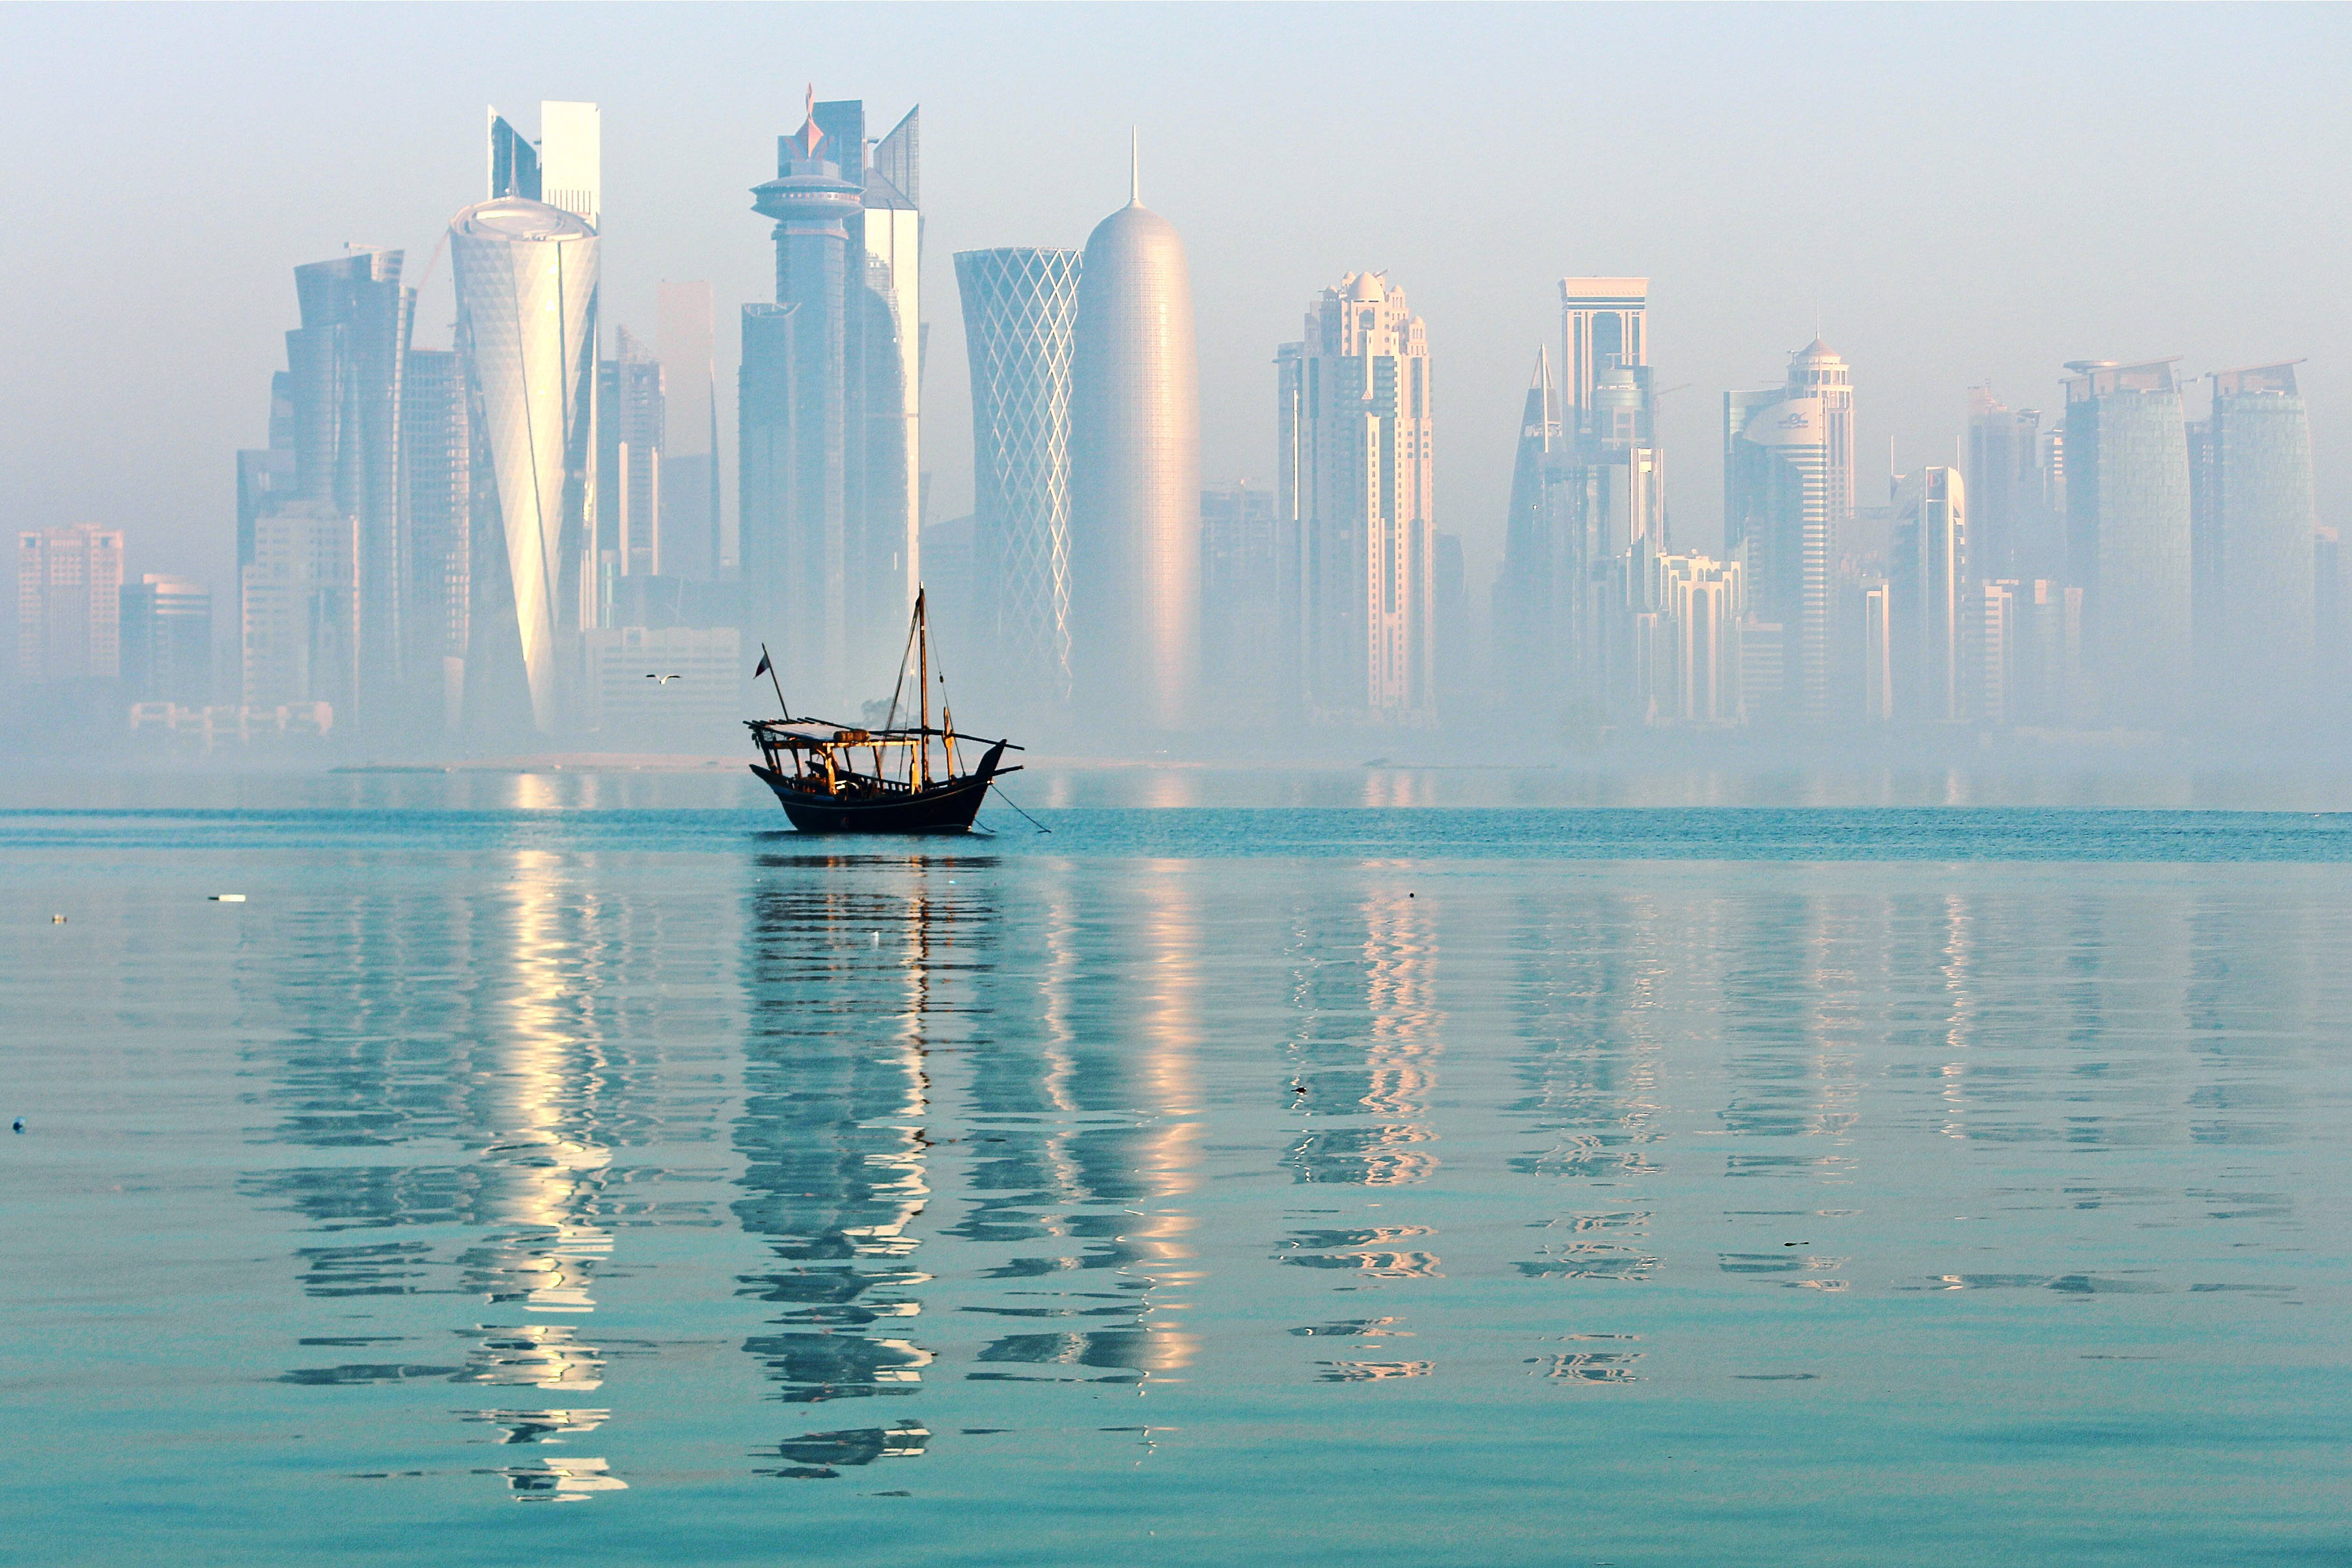 Doha seen from the sea.